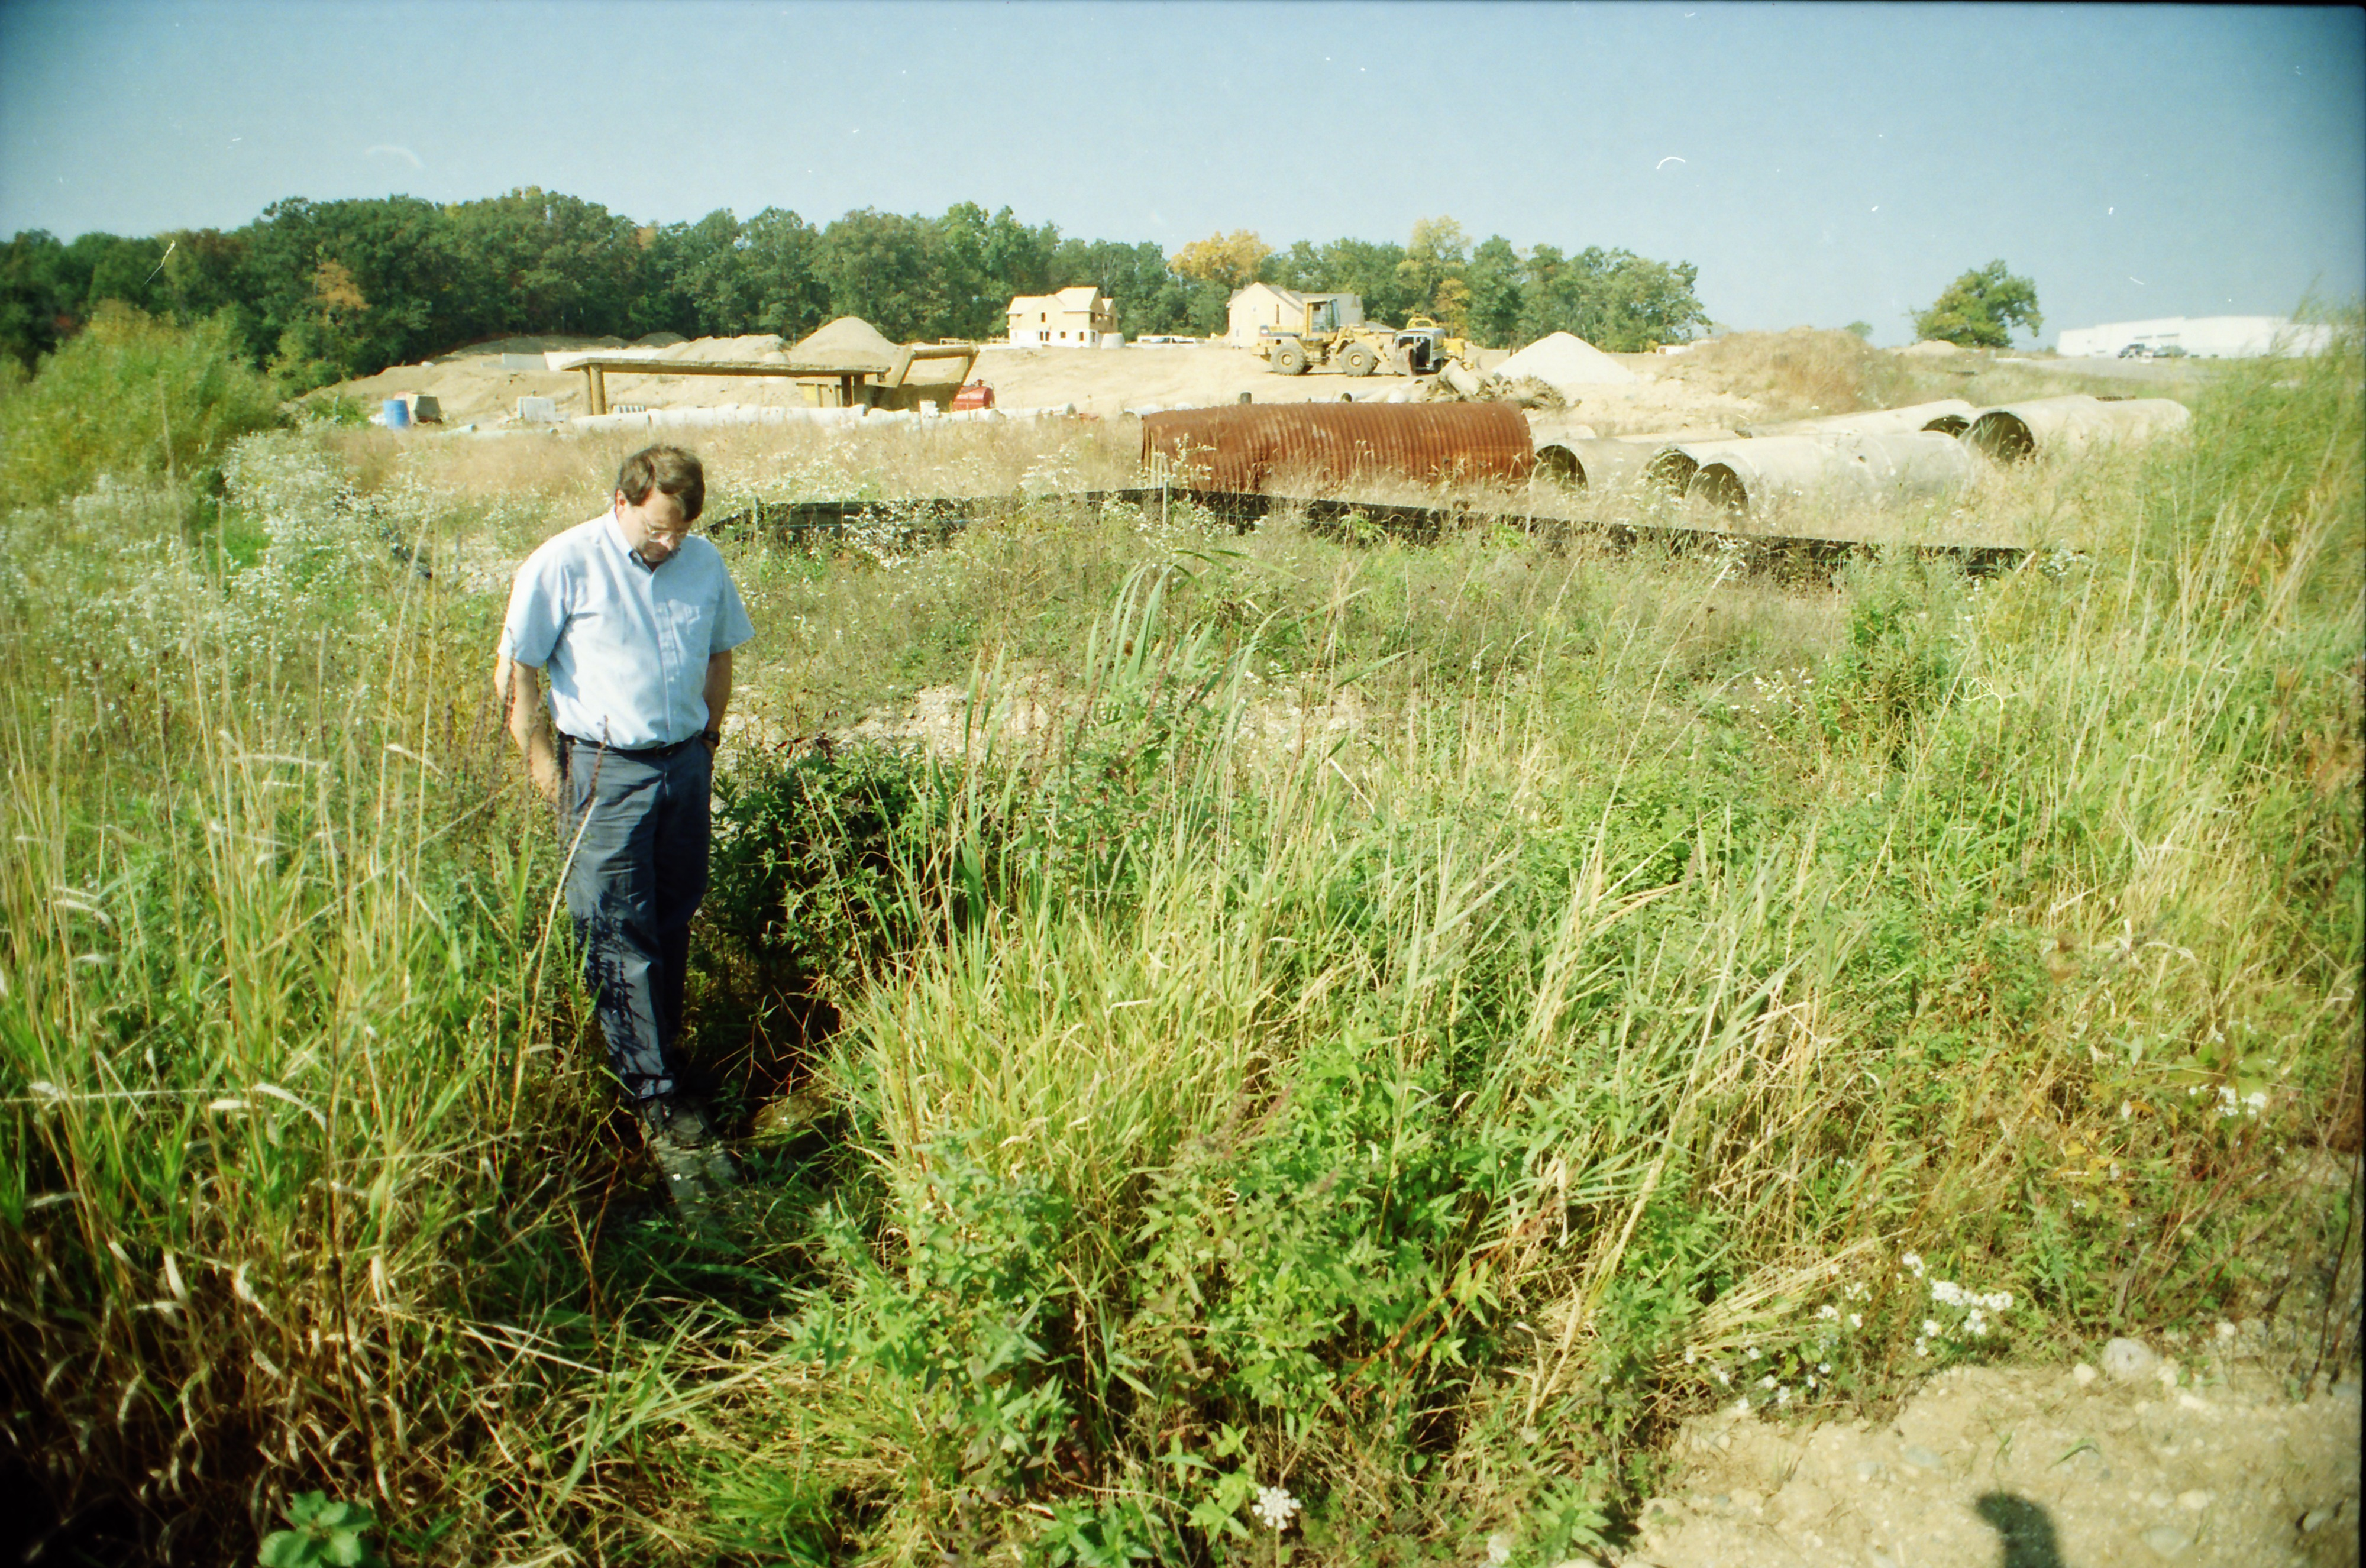 Roger Rayle Inspects a Tributary That Flows from the Pall-Gelman Sciences Property, September 1997 image